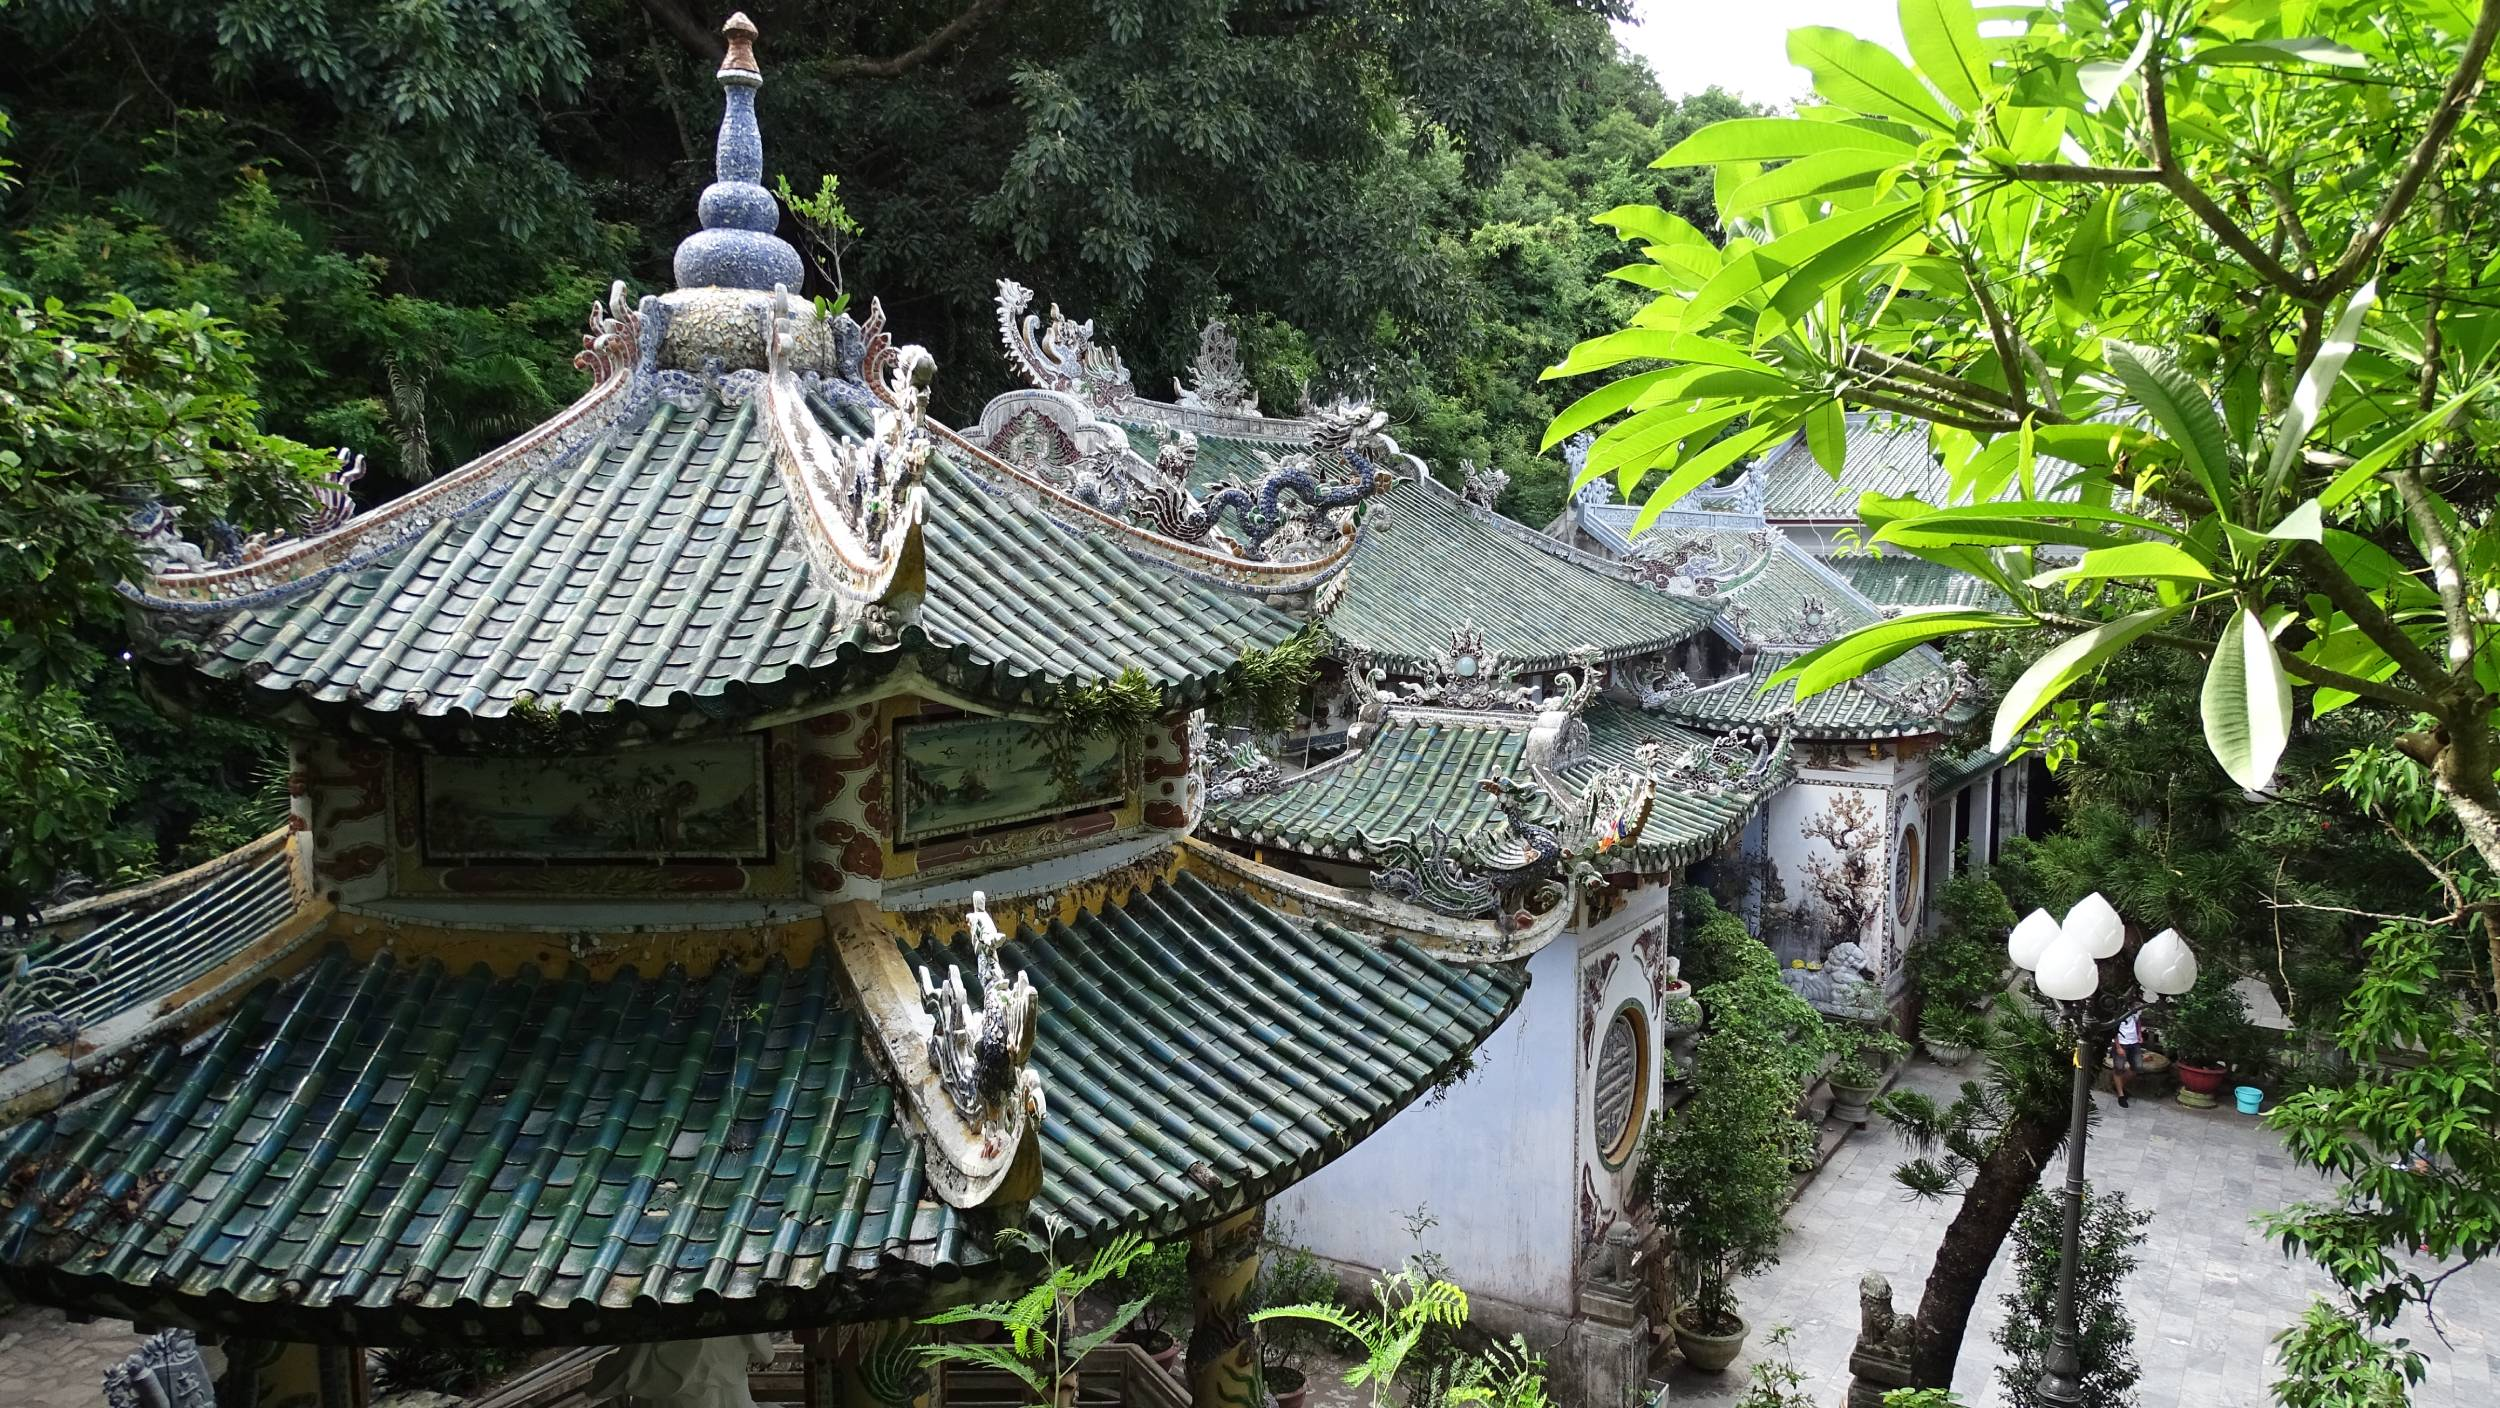 The green tiled roof of the Linh Ung Pagoda at the Water Mountain